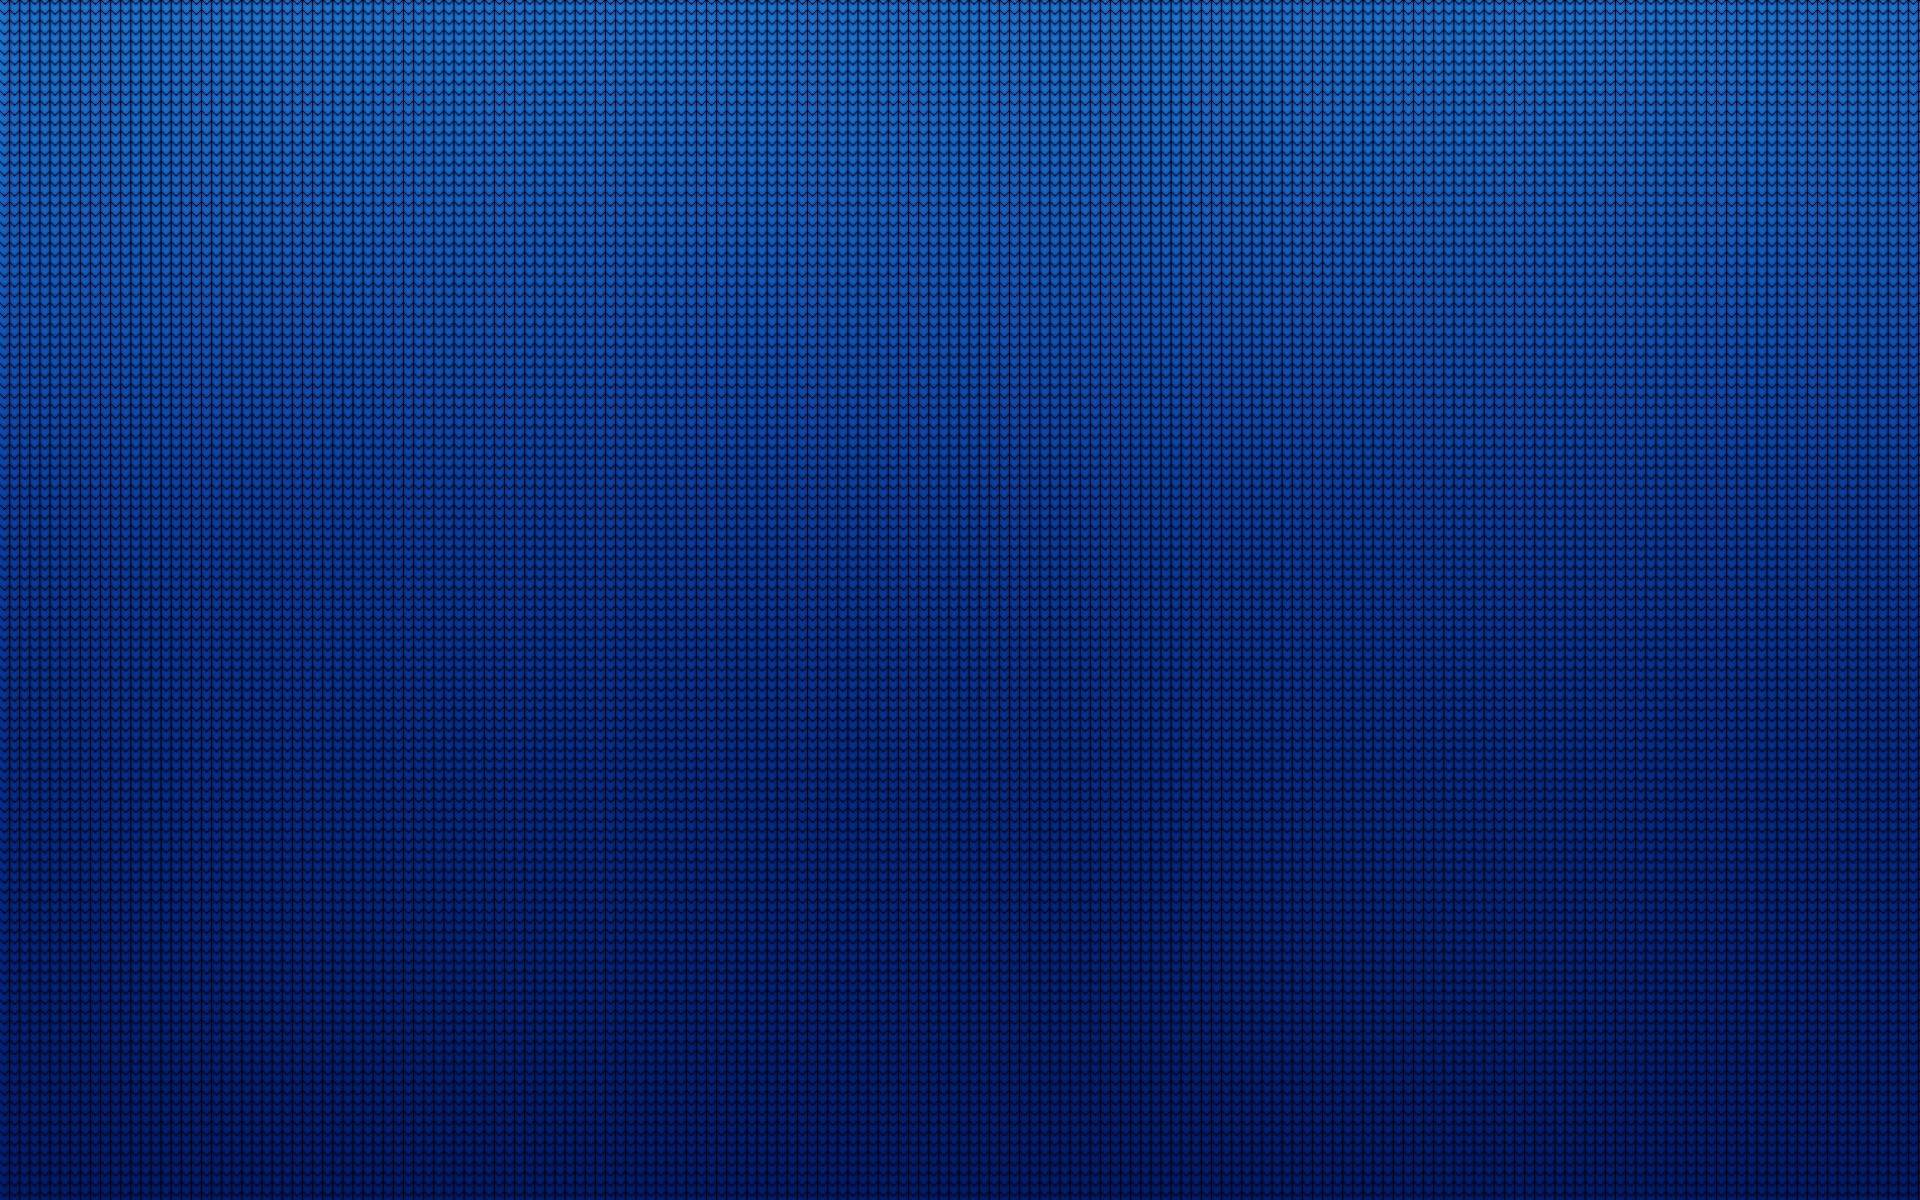 Dark Blue Free Background Pictures For Desktop #5131 Wallpaper ...